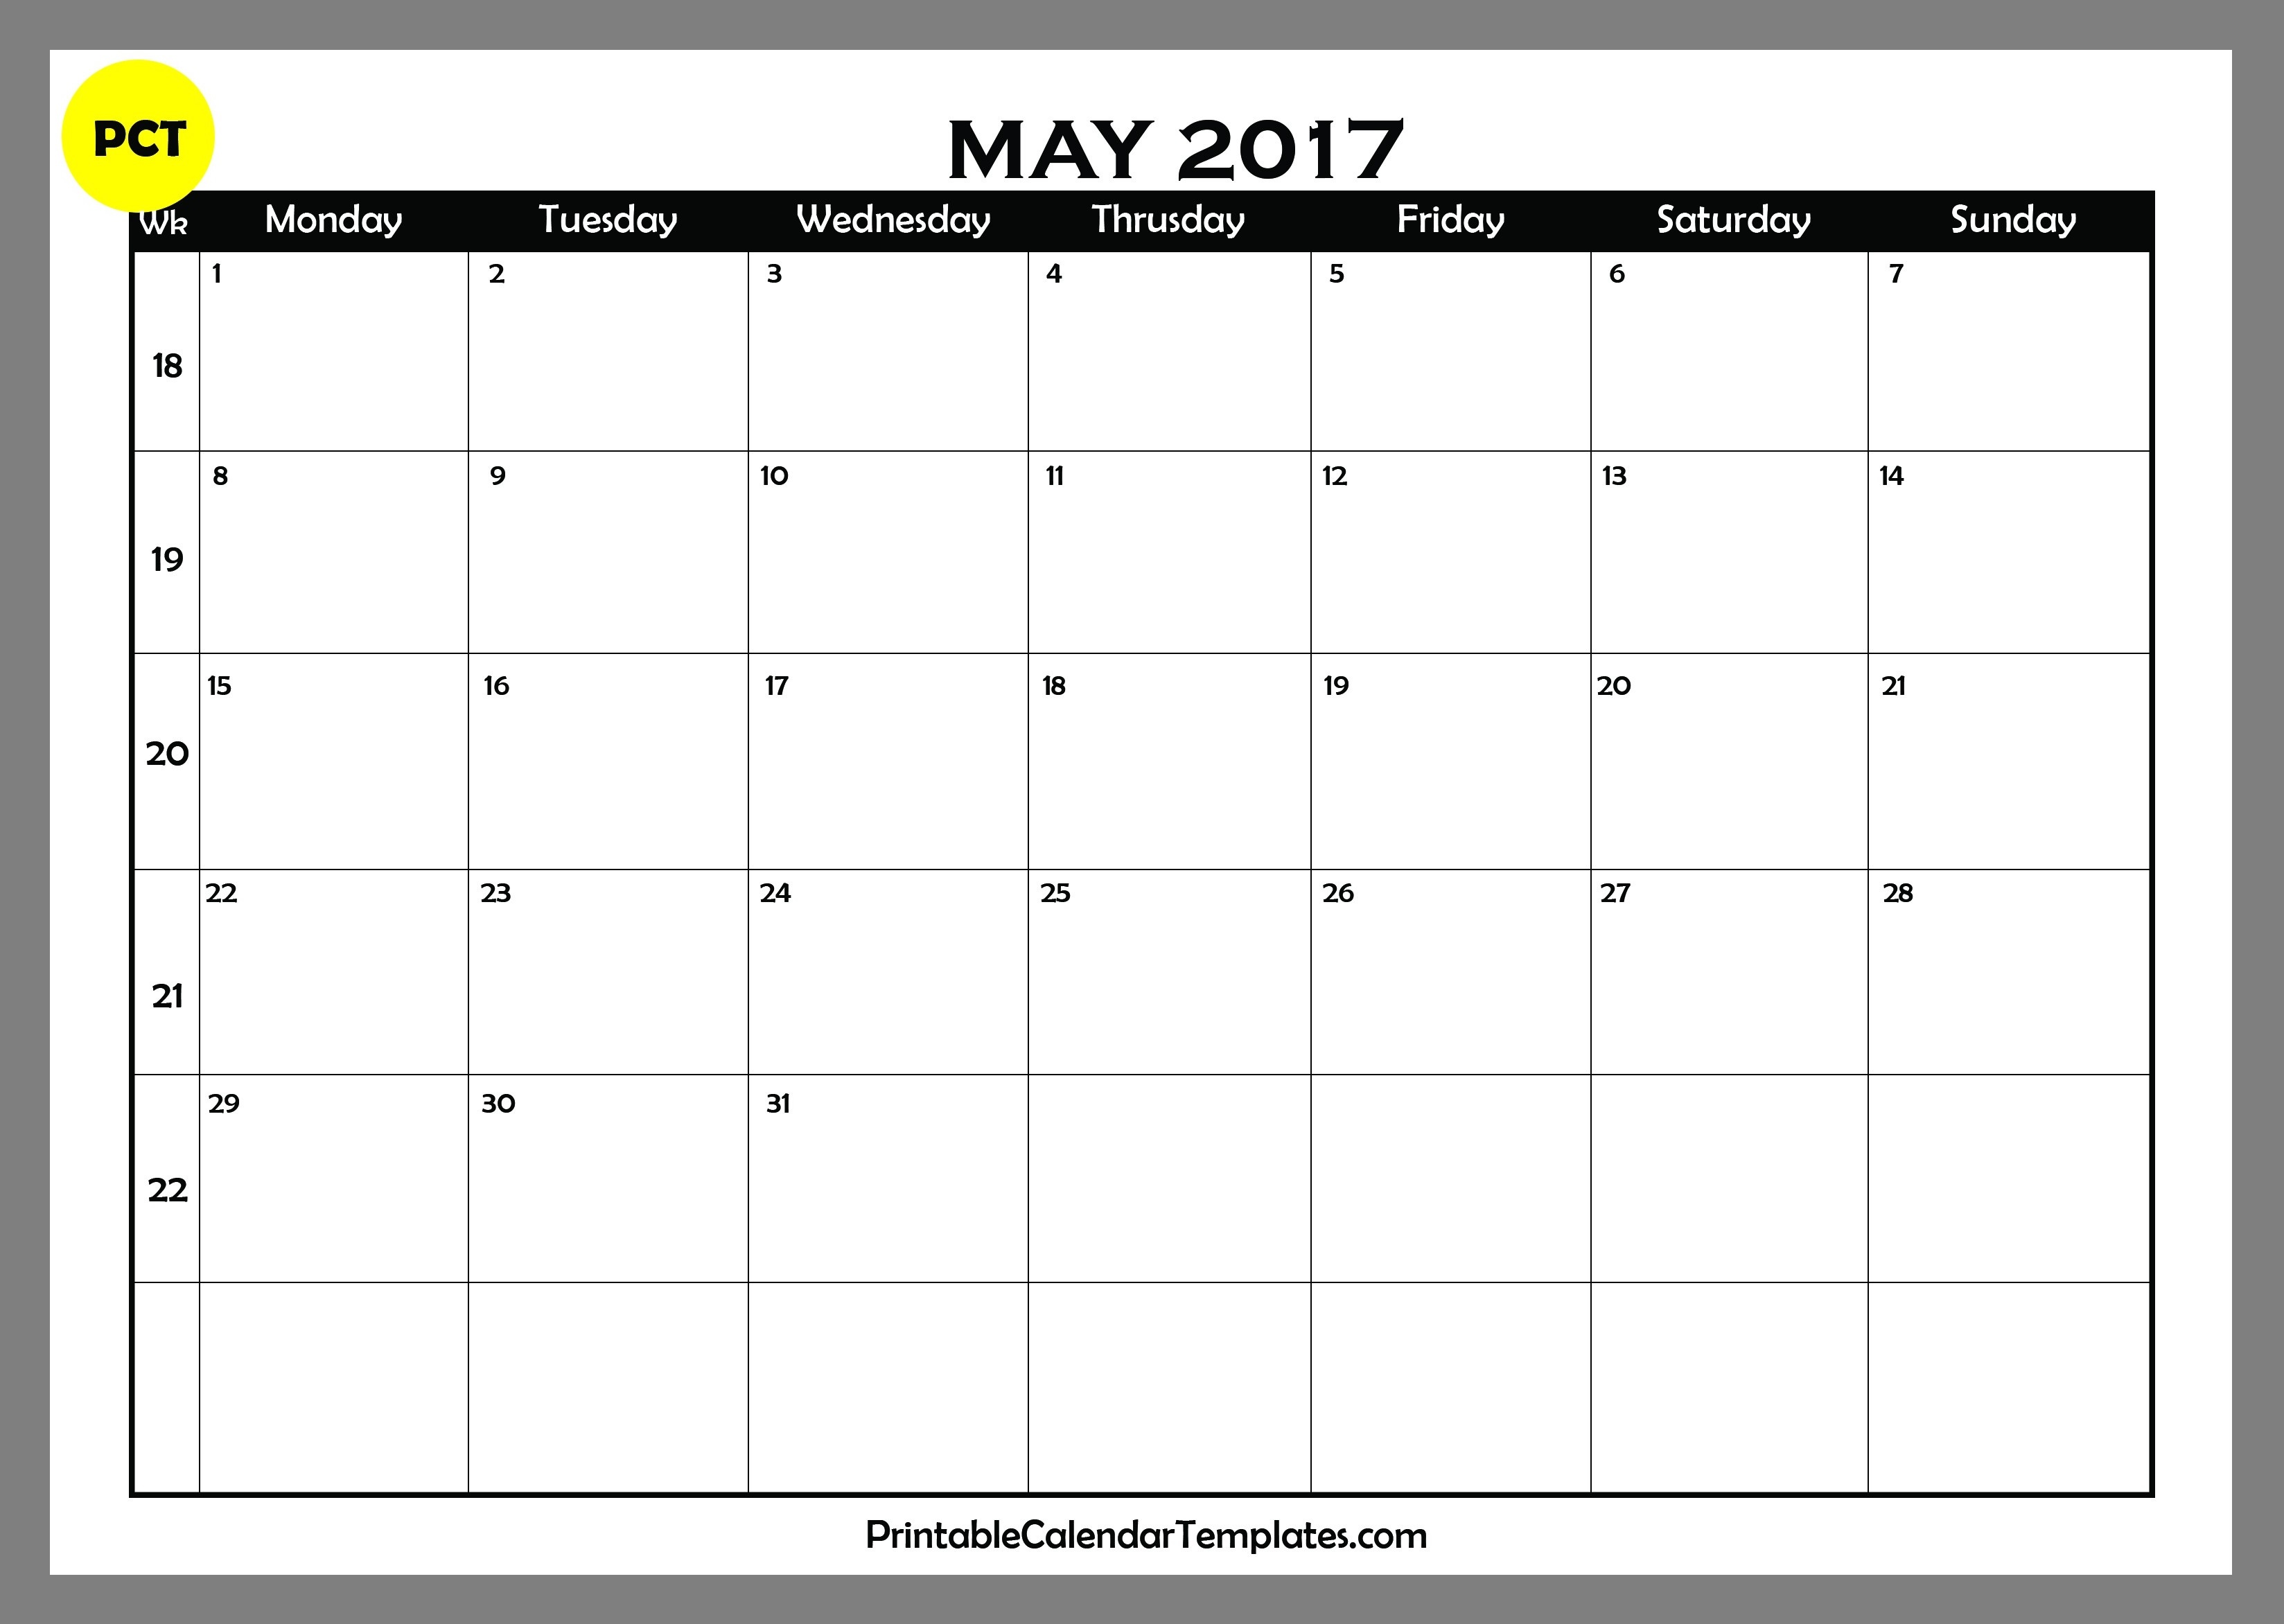 may 2017 calendar printable printable calendar templates. Black Bedroom Furniture Sets. Home Design Ideas